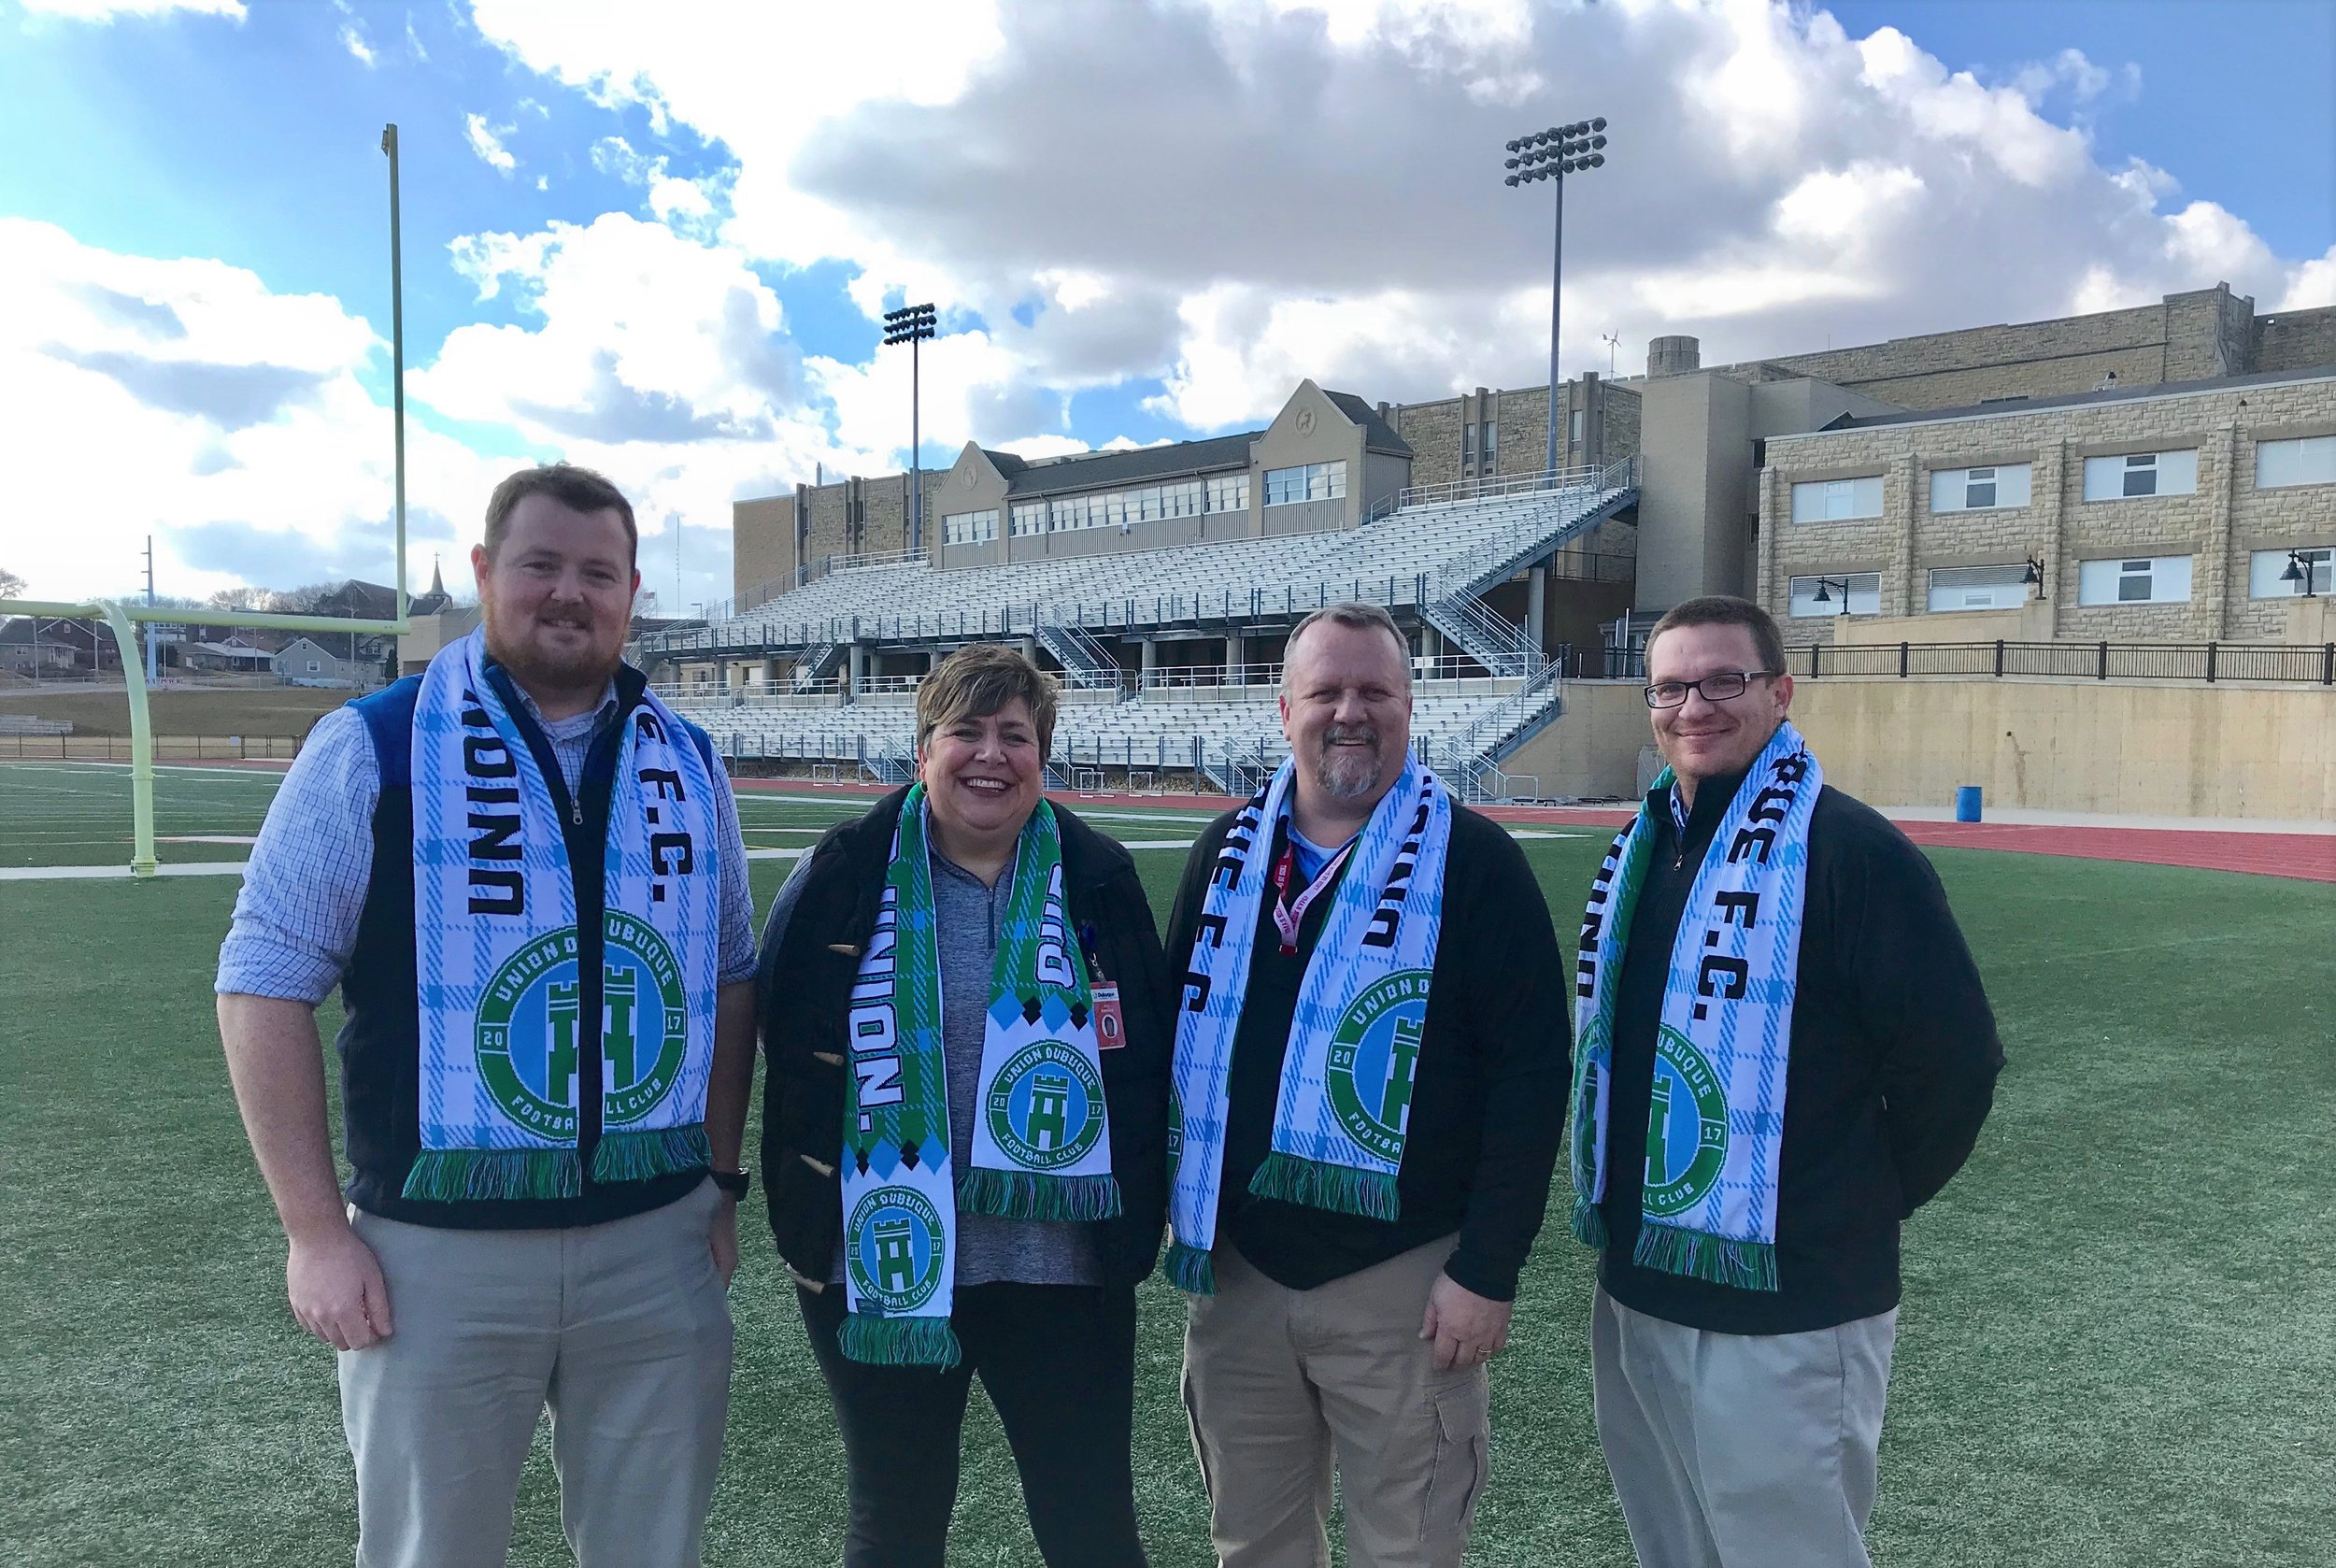 (L-R) Cliff Conrad, Union Dubuque F.C. President; Amy Hawkins, DCSD Activities and Athletics Director; Brent Cook, DSHS Activities Director; and Jon Denham, Union Dubuque F.C. Manager